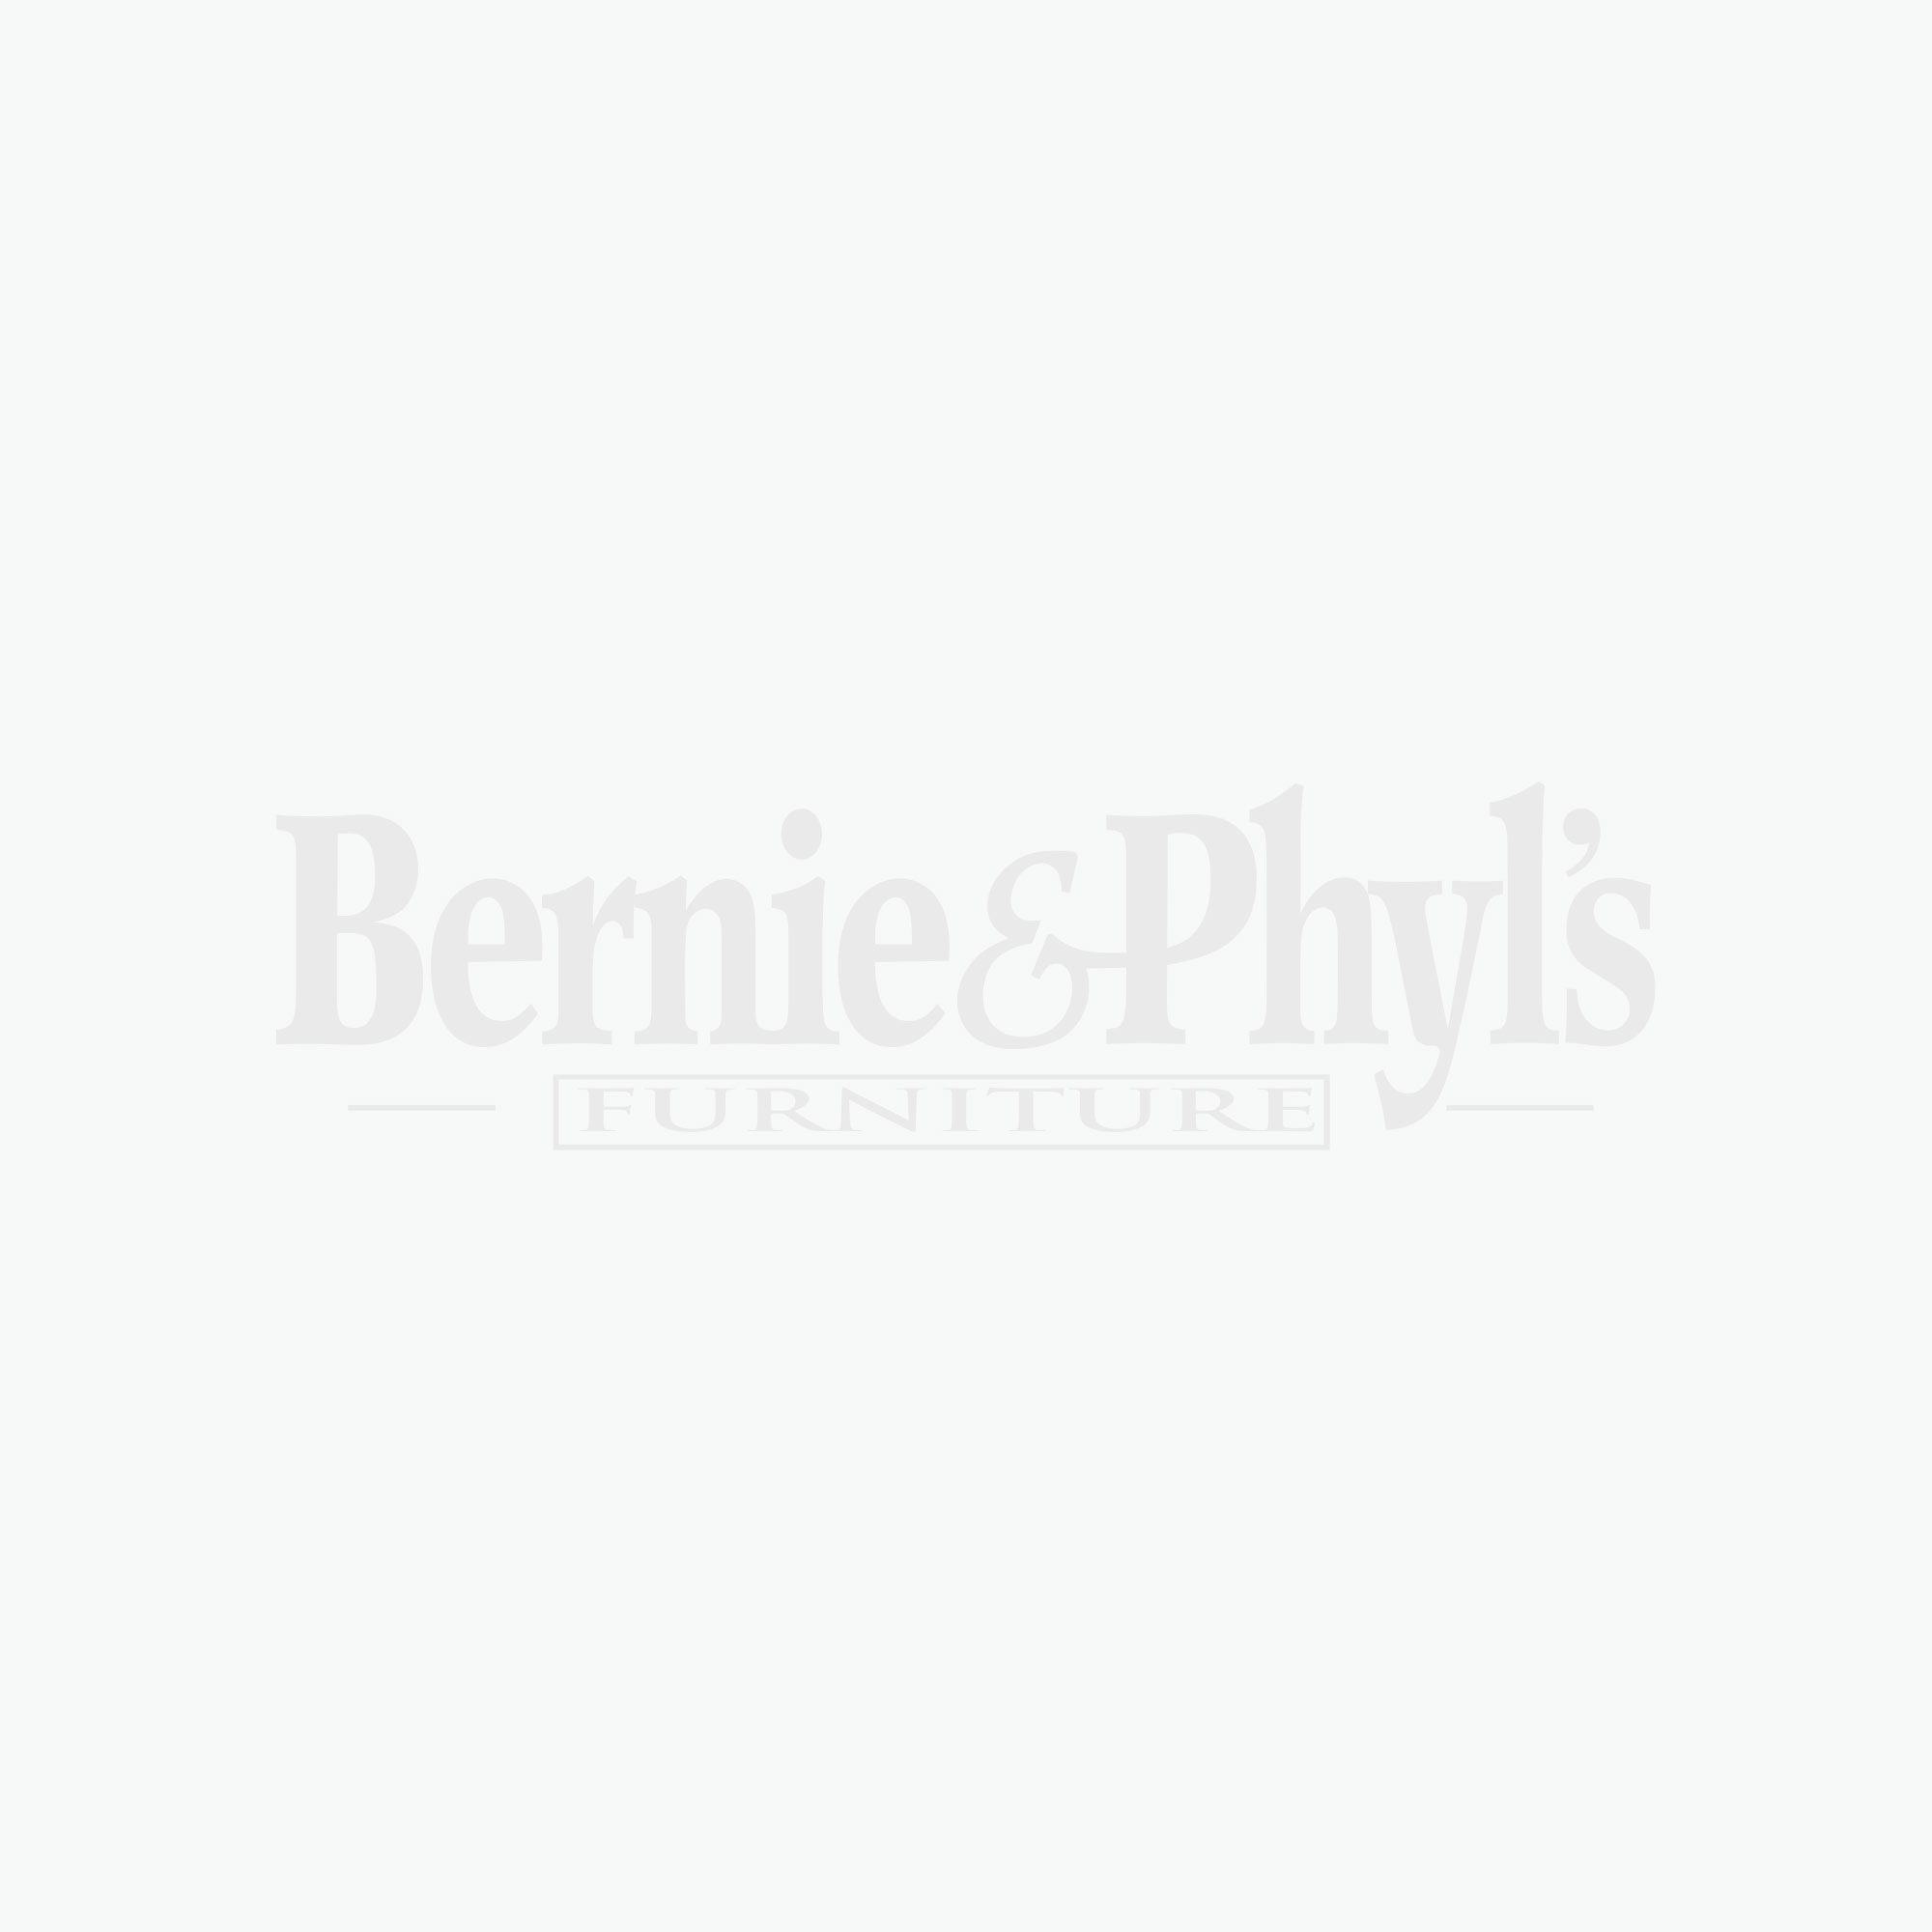 Granbury Black Bench - (Set of 1) - BC9377T - by Southern Enterprises